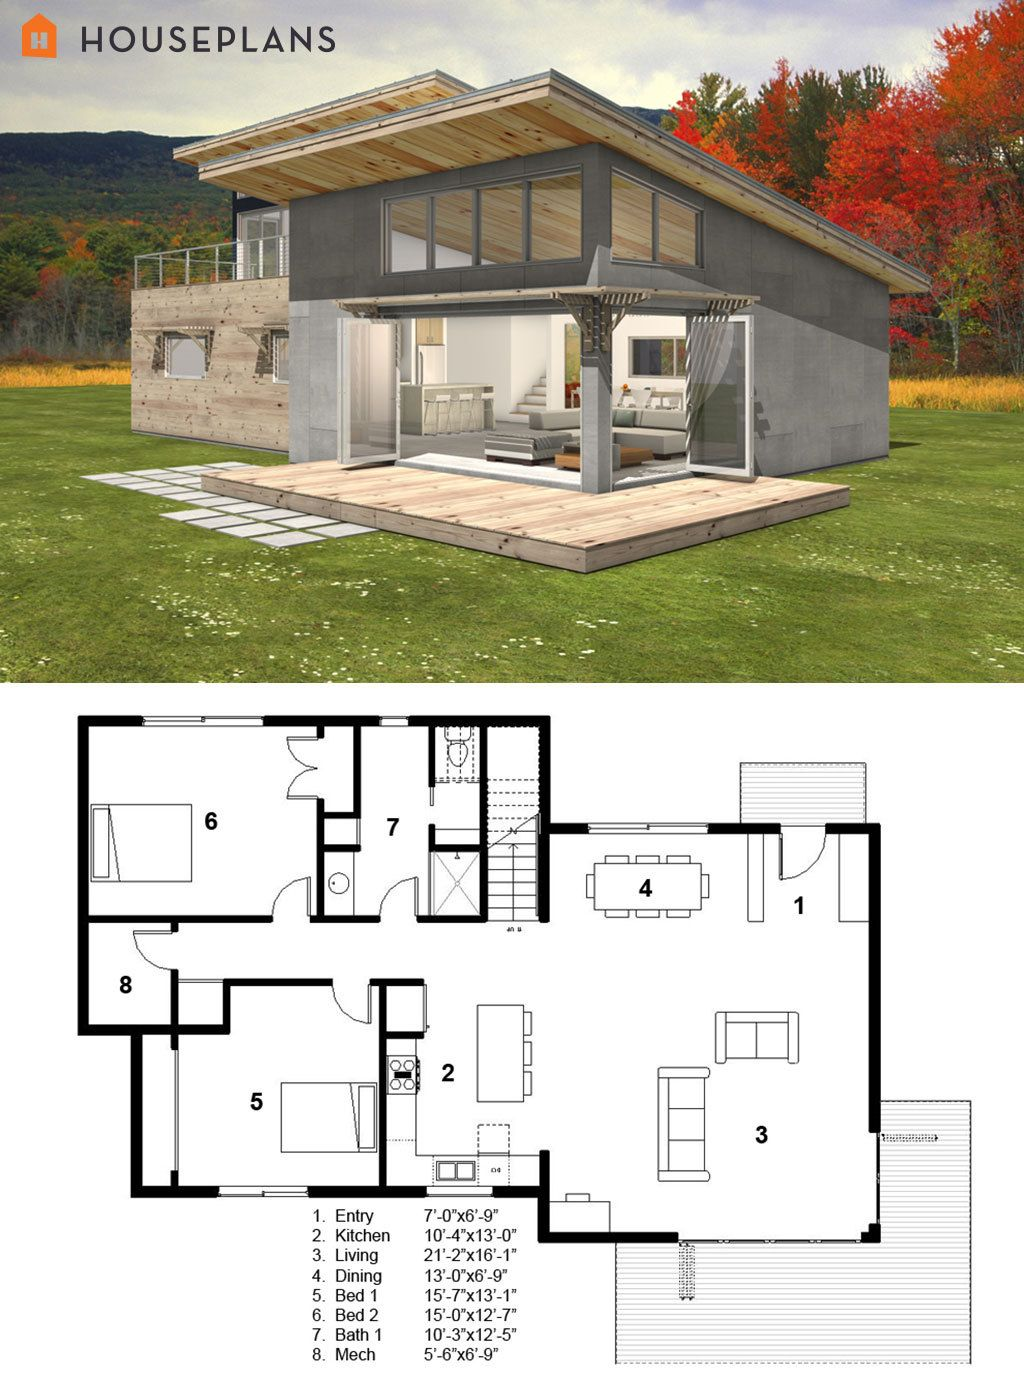 Modern Style House Plan 3 Beds 2 Baths 2115 Sq Ft Plan 497 31